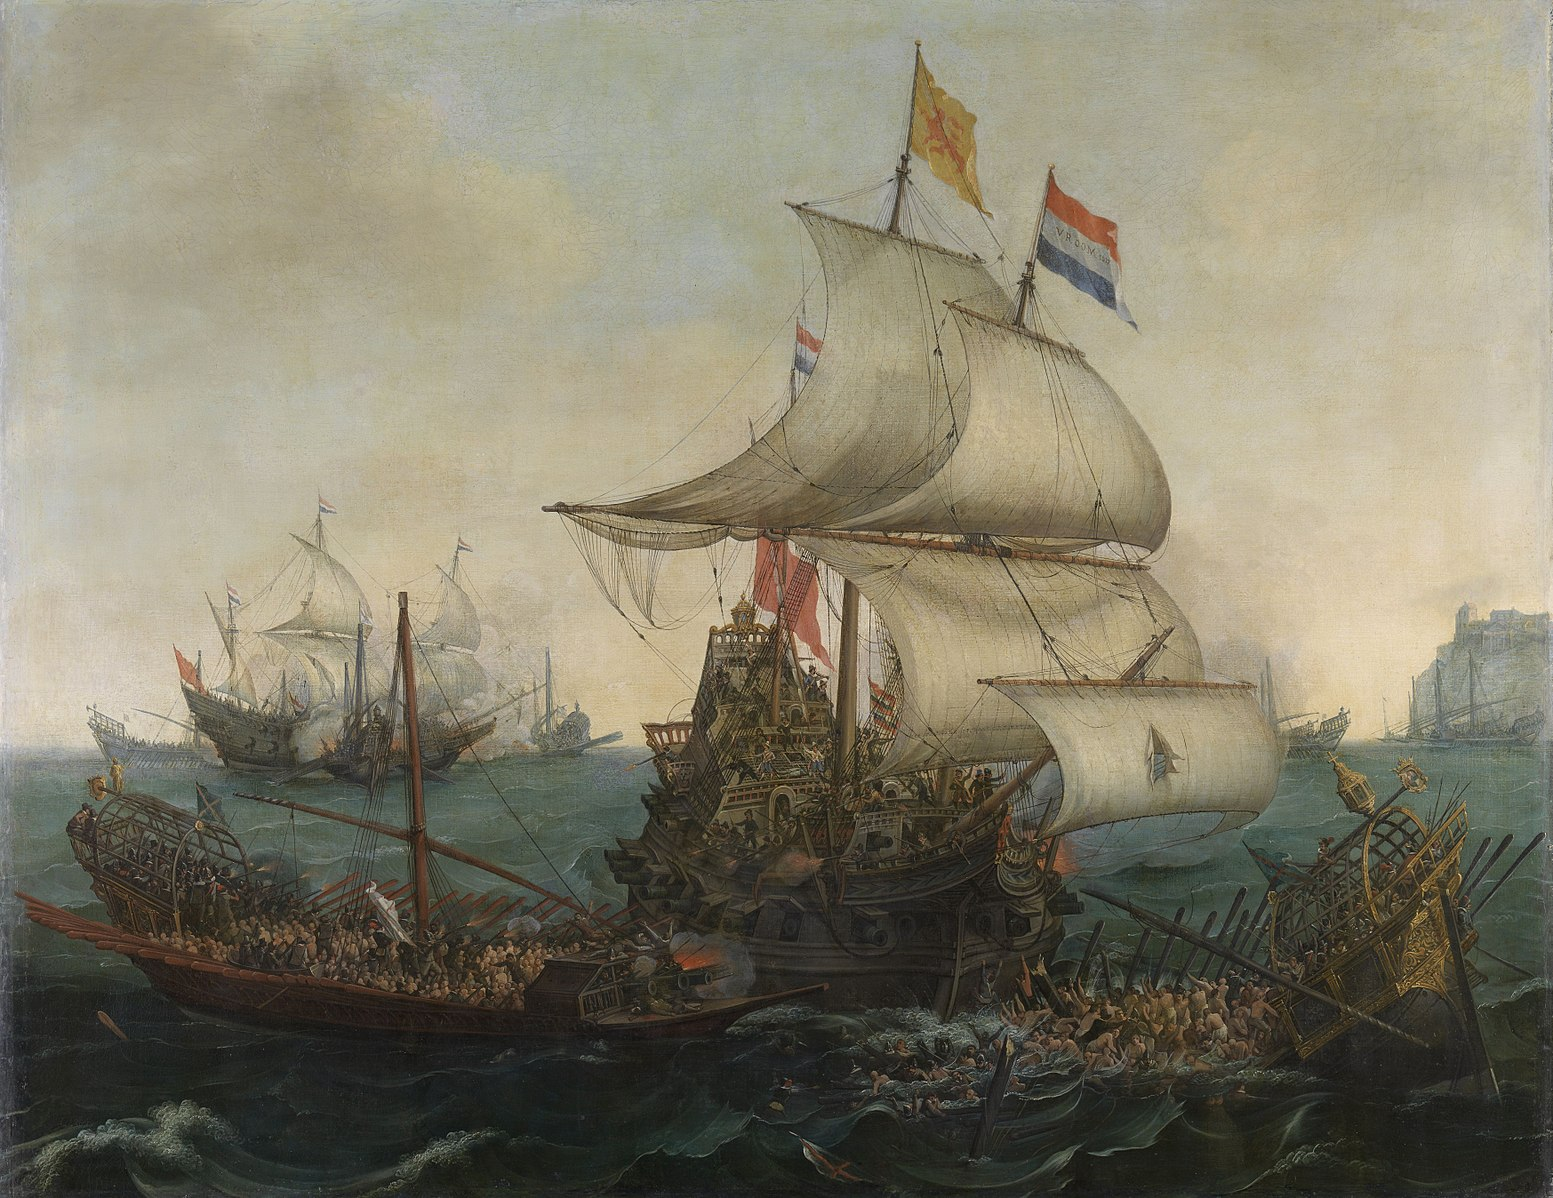 Hendrick Cornelisz Vroom ' s    Dutch ships ramming Spanish galleys off the English coast, 3 October 1602 , painted in 1617 and shown at the Rijksmuseum. This image was sourced from  Wikipedia Commons .